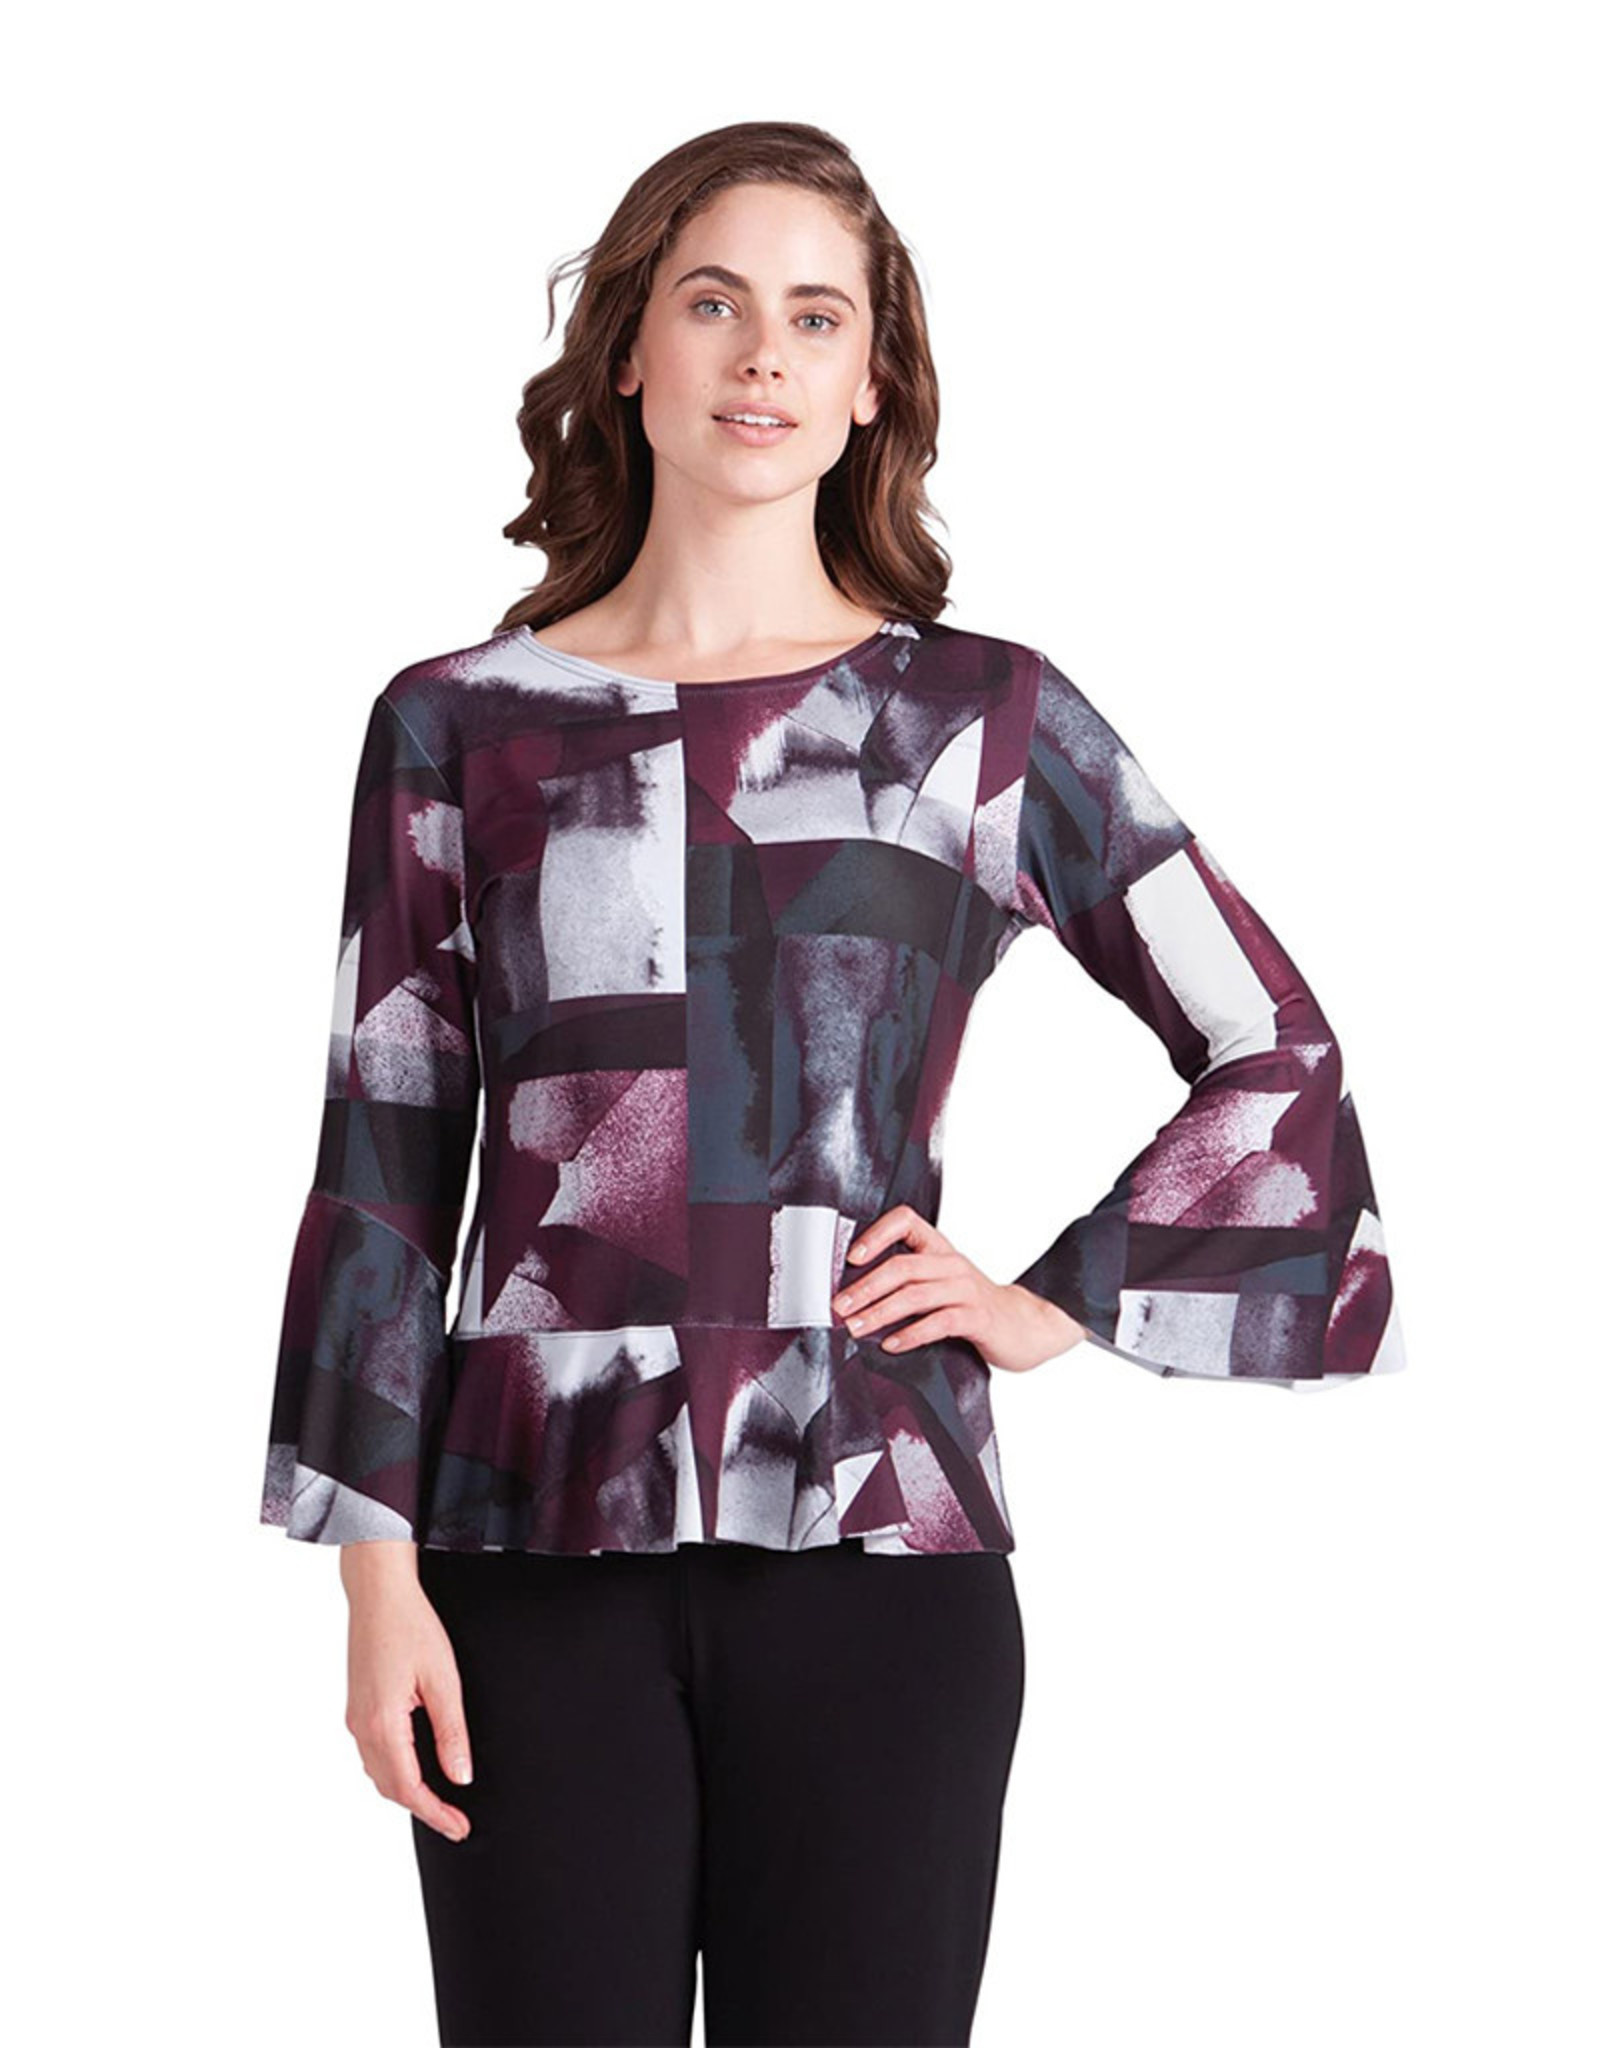 Sympli Nu Peplum Top - Wine Shadow